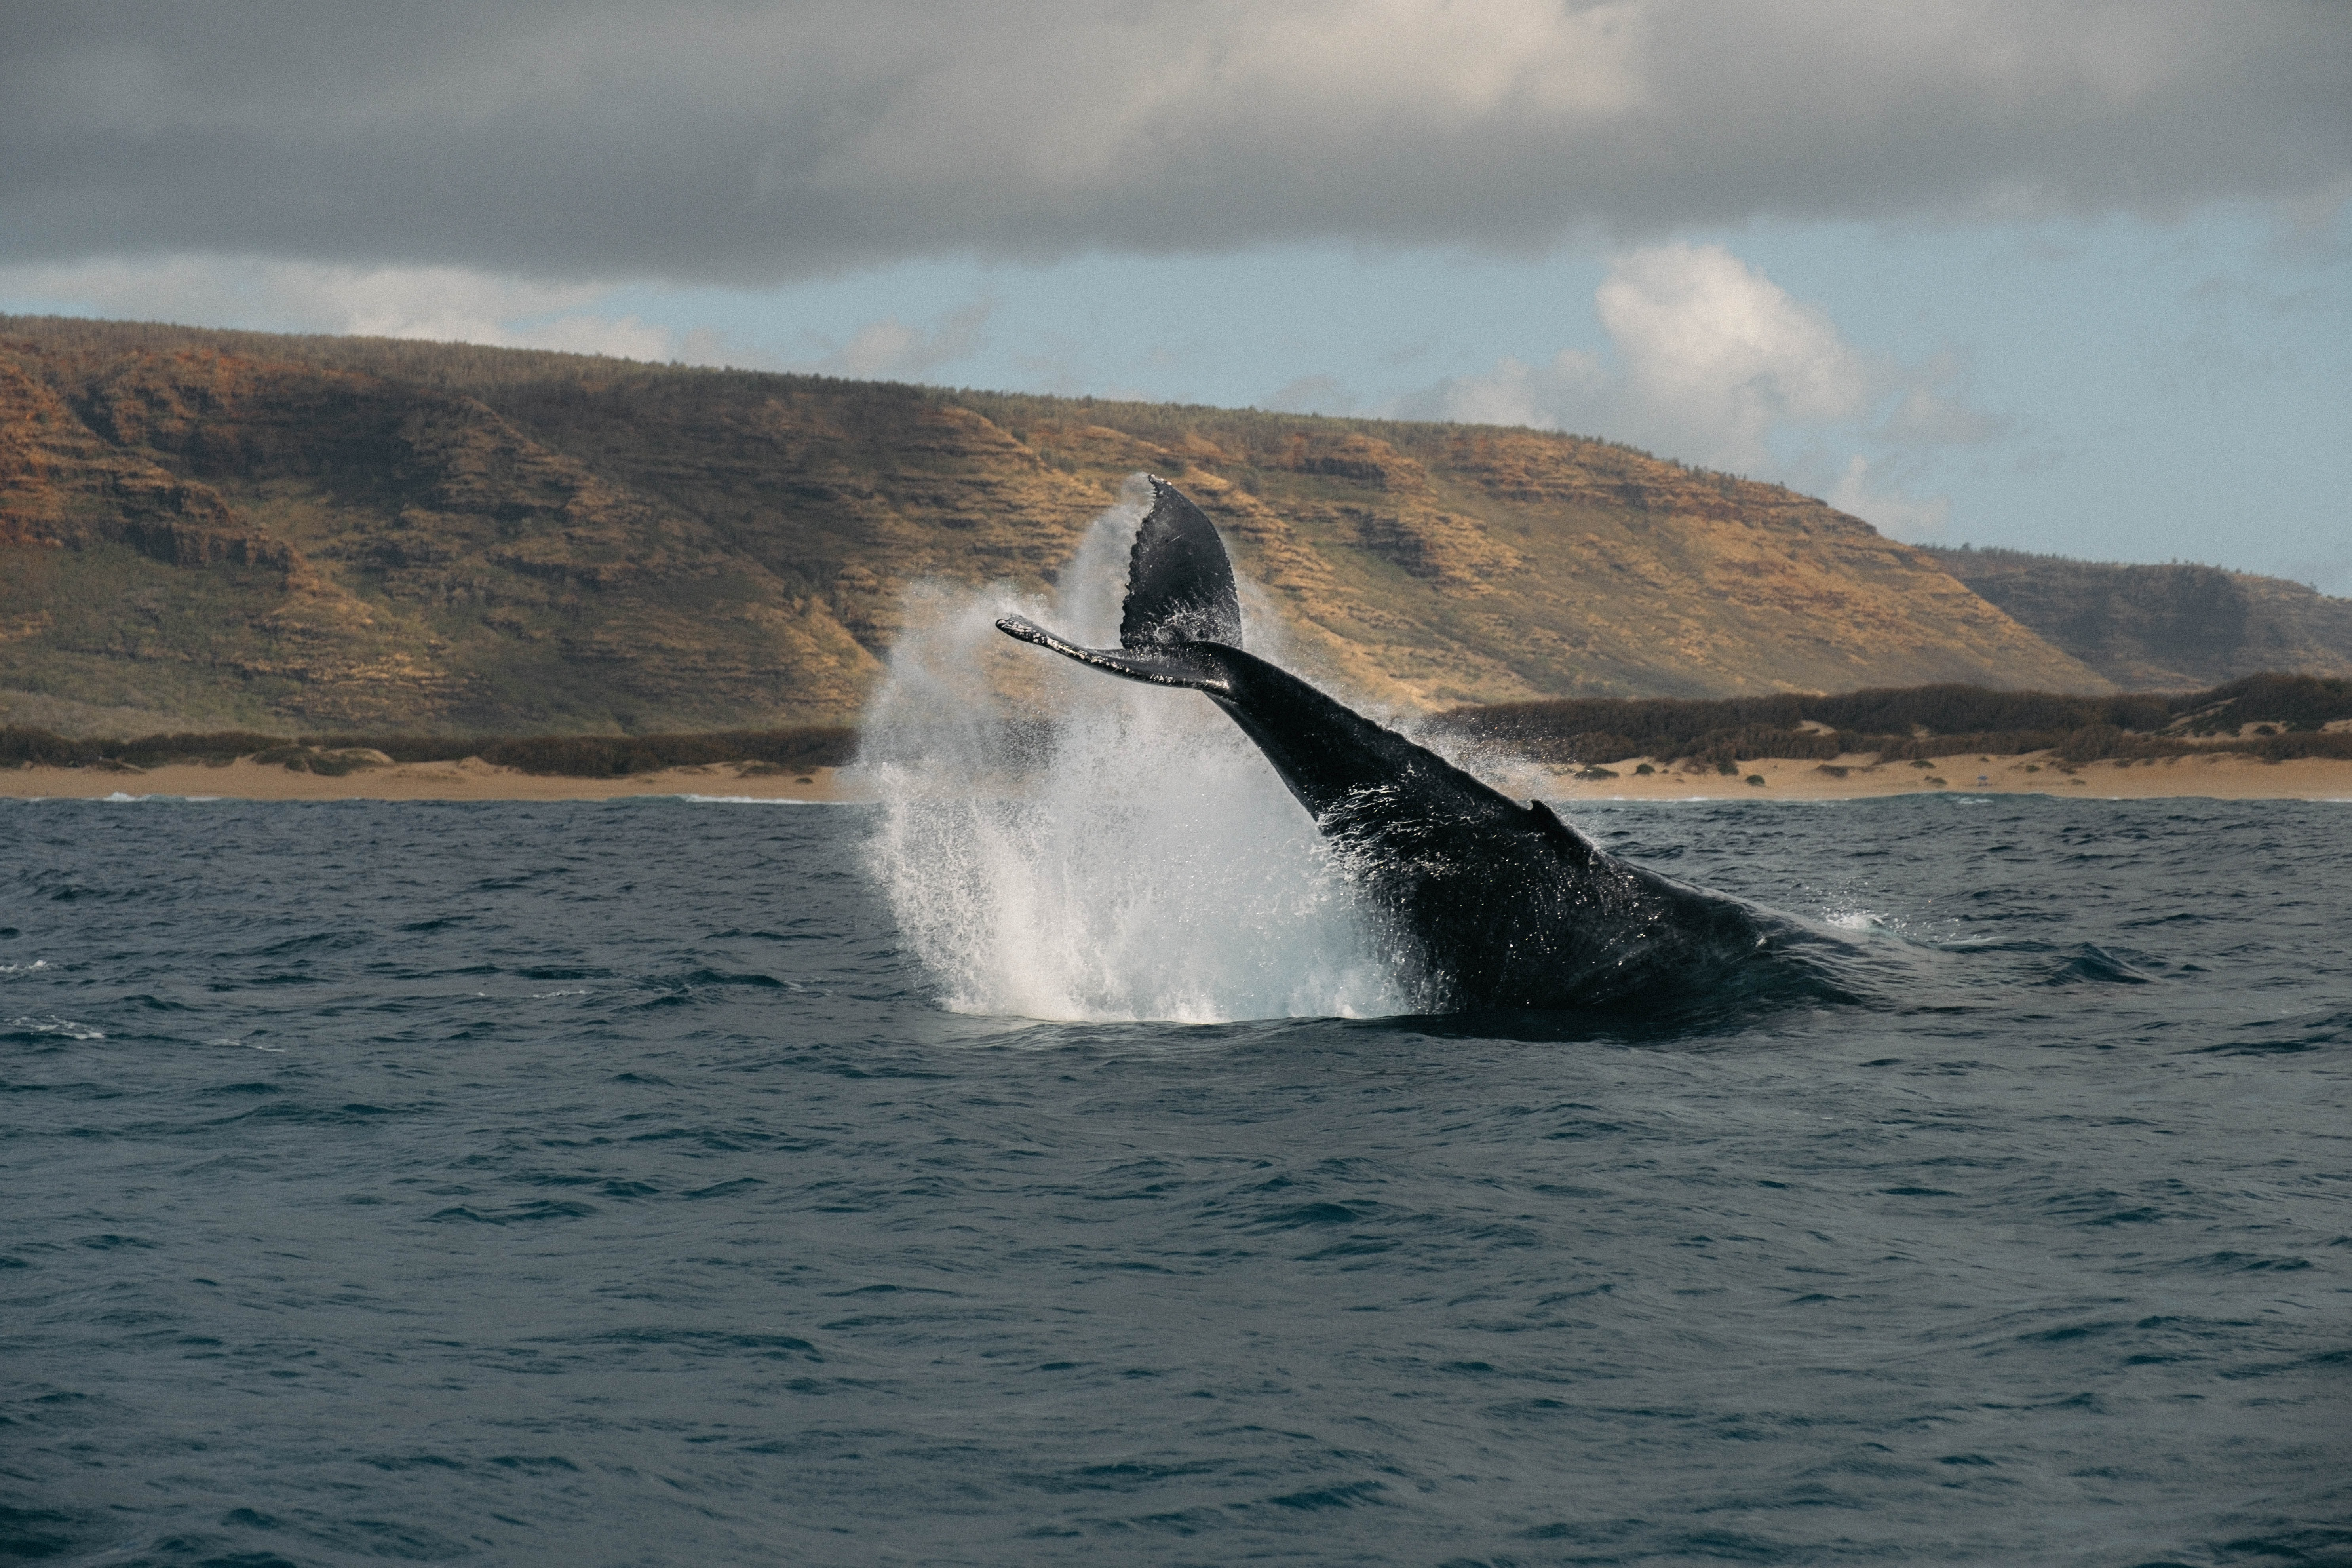 whales tale during breach at sea